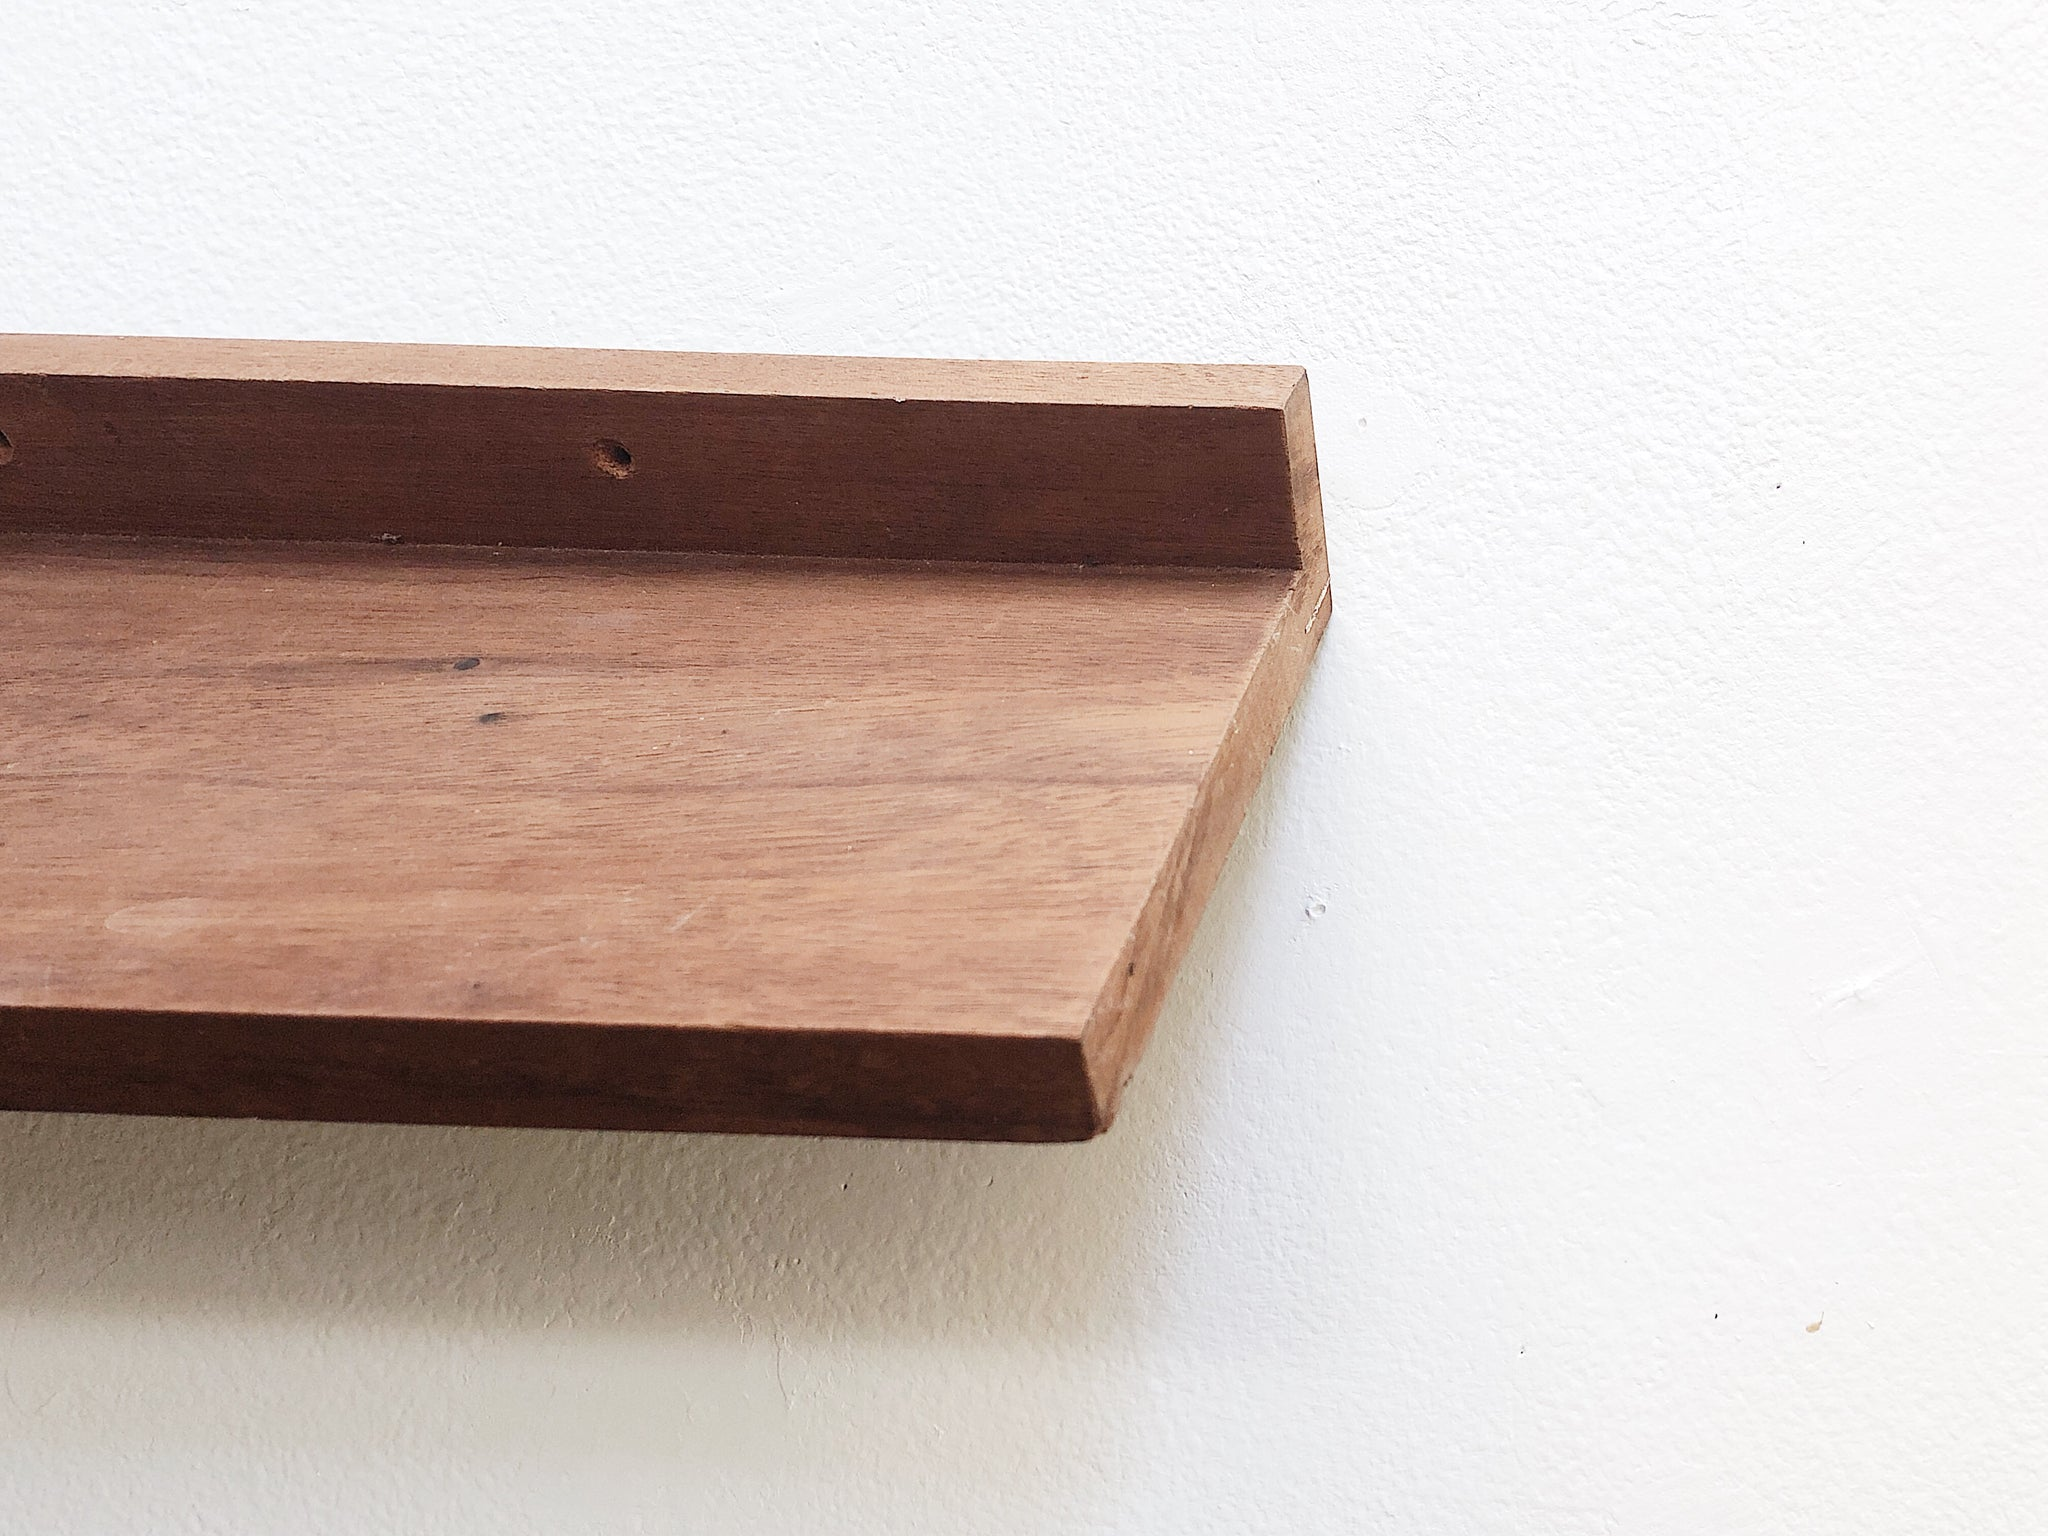 Minimalist Wood Display Shelf